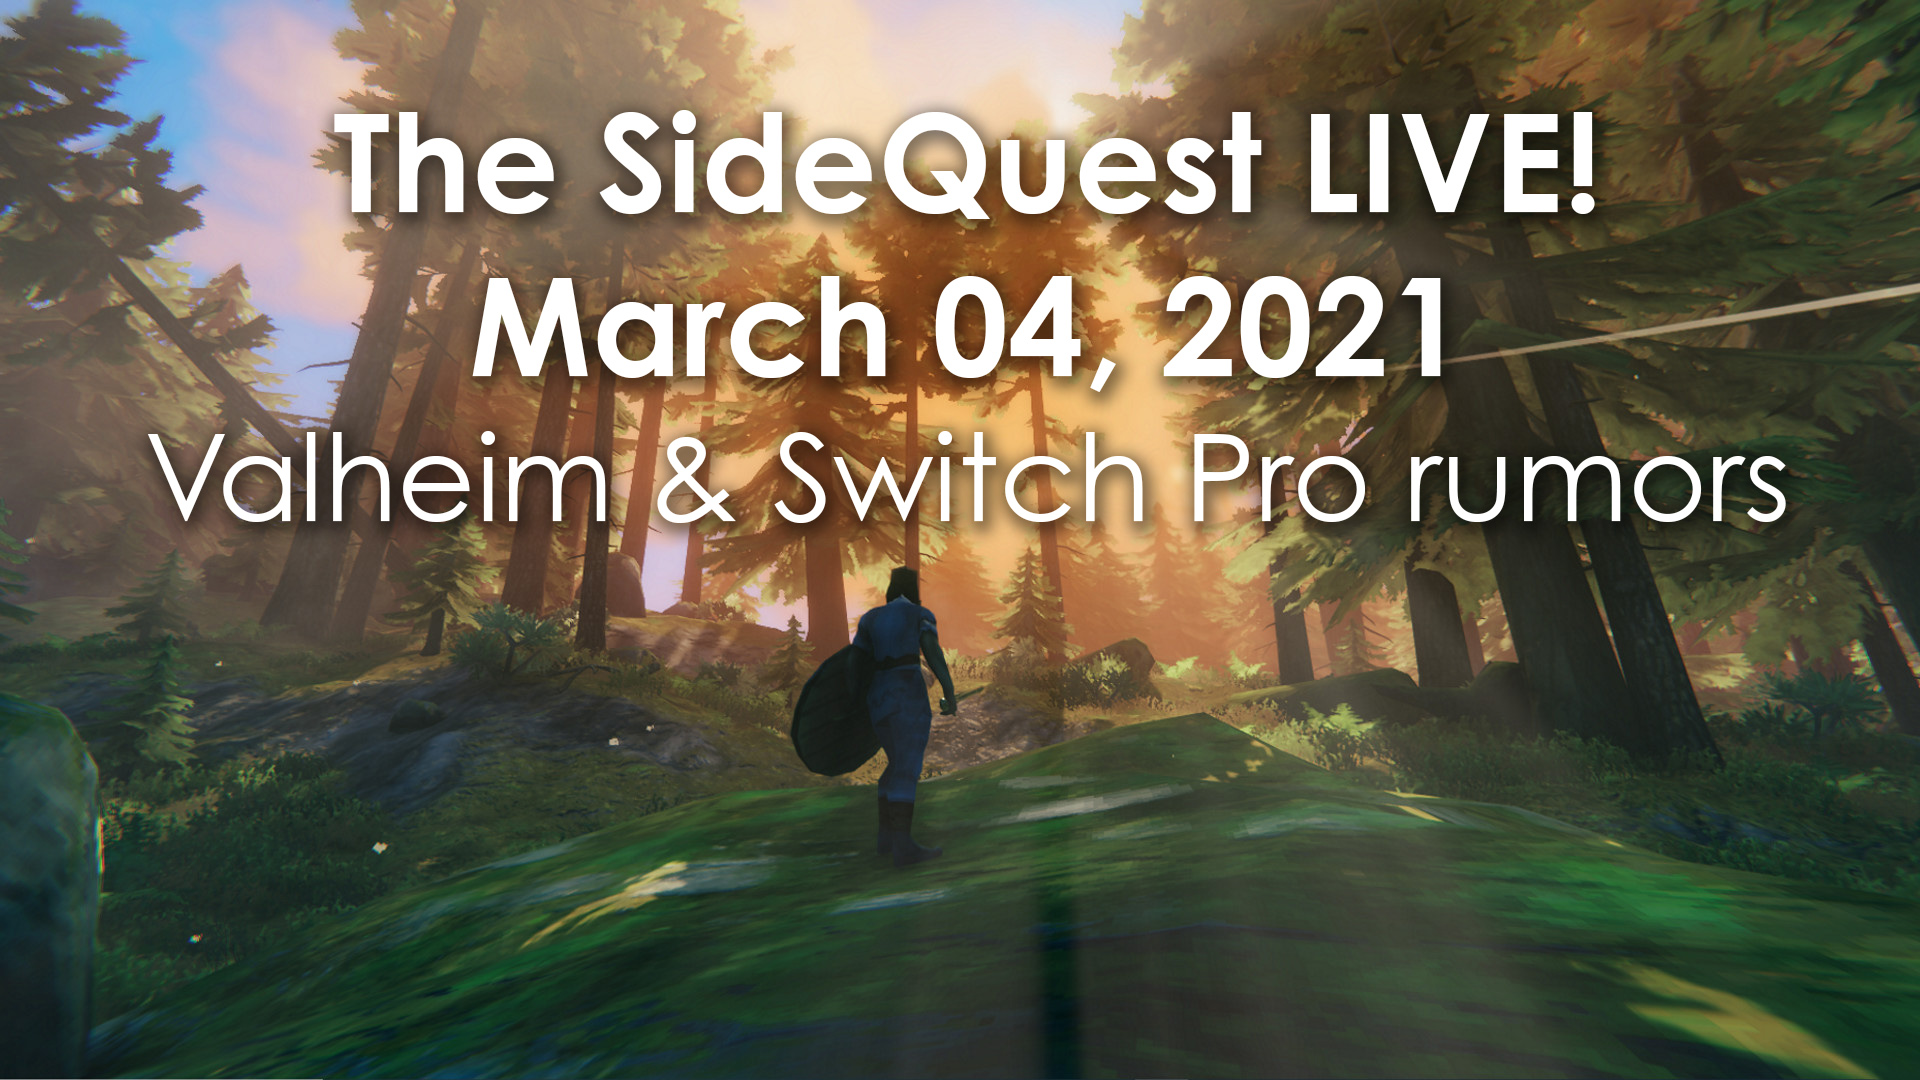 The SideQuest LIVE! March 04, 2021: Valheim and Switch Pro rumors